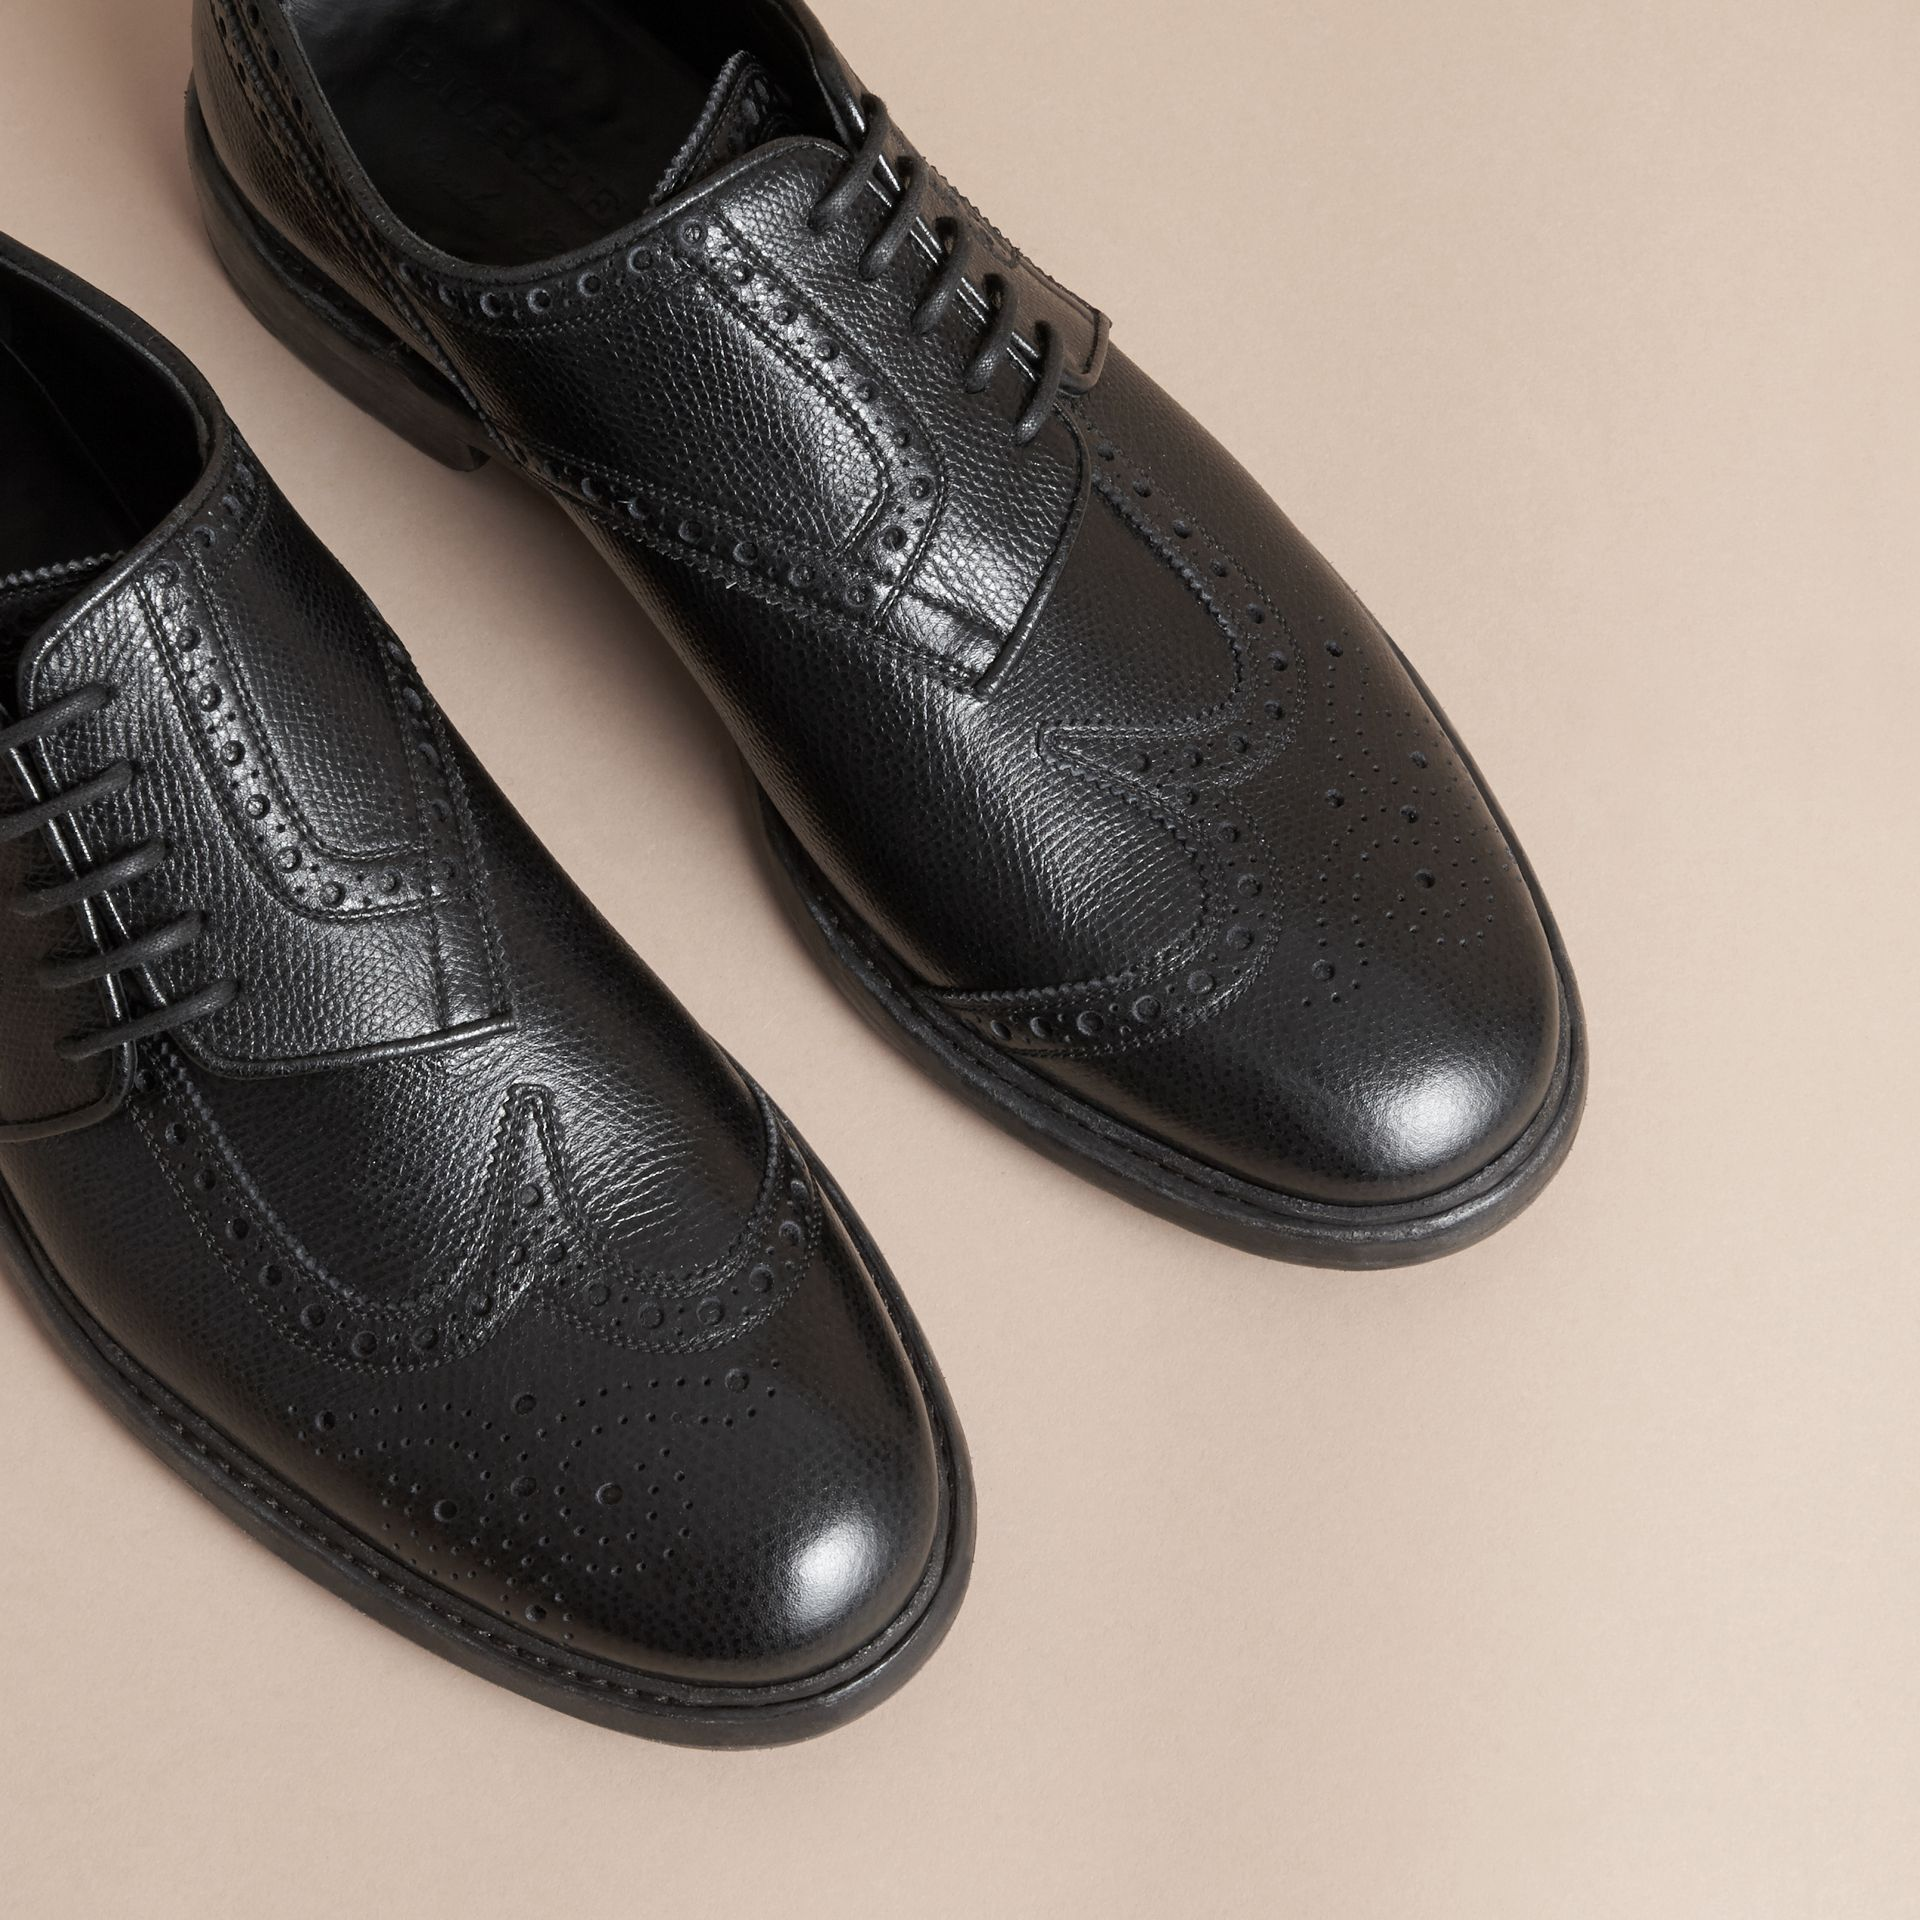 Leather Brogues with Asymmetric Closure in Black - Men | Burberry - gallery image 3